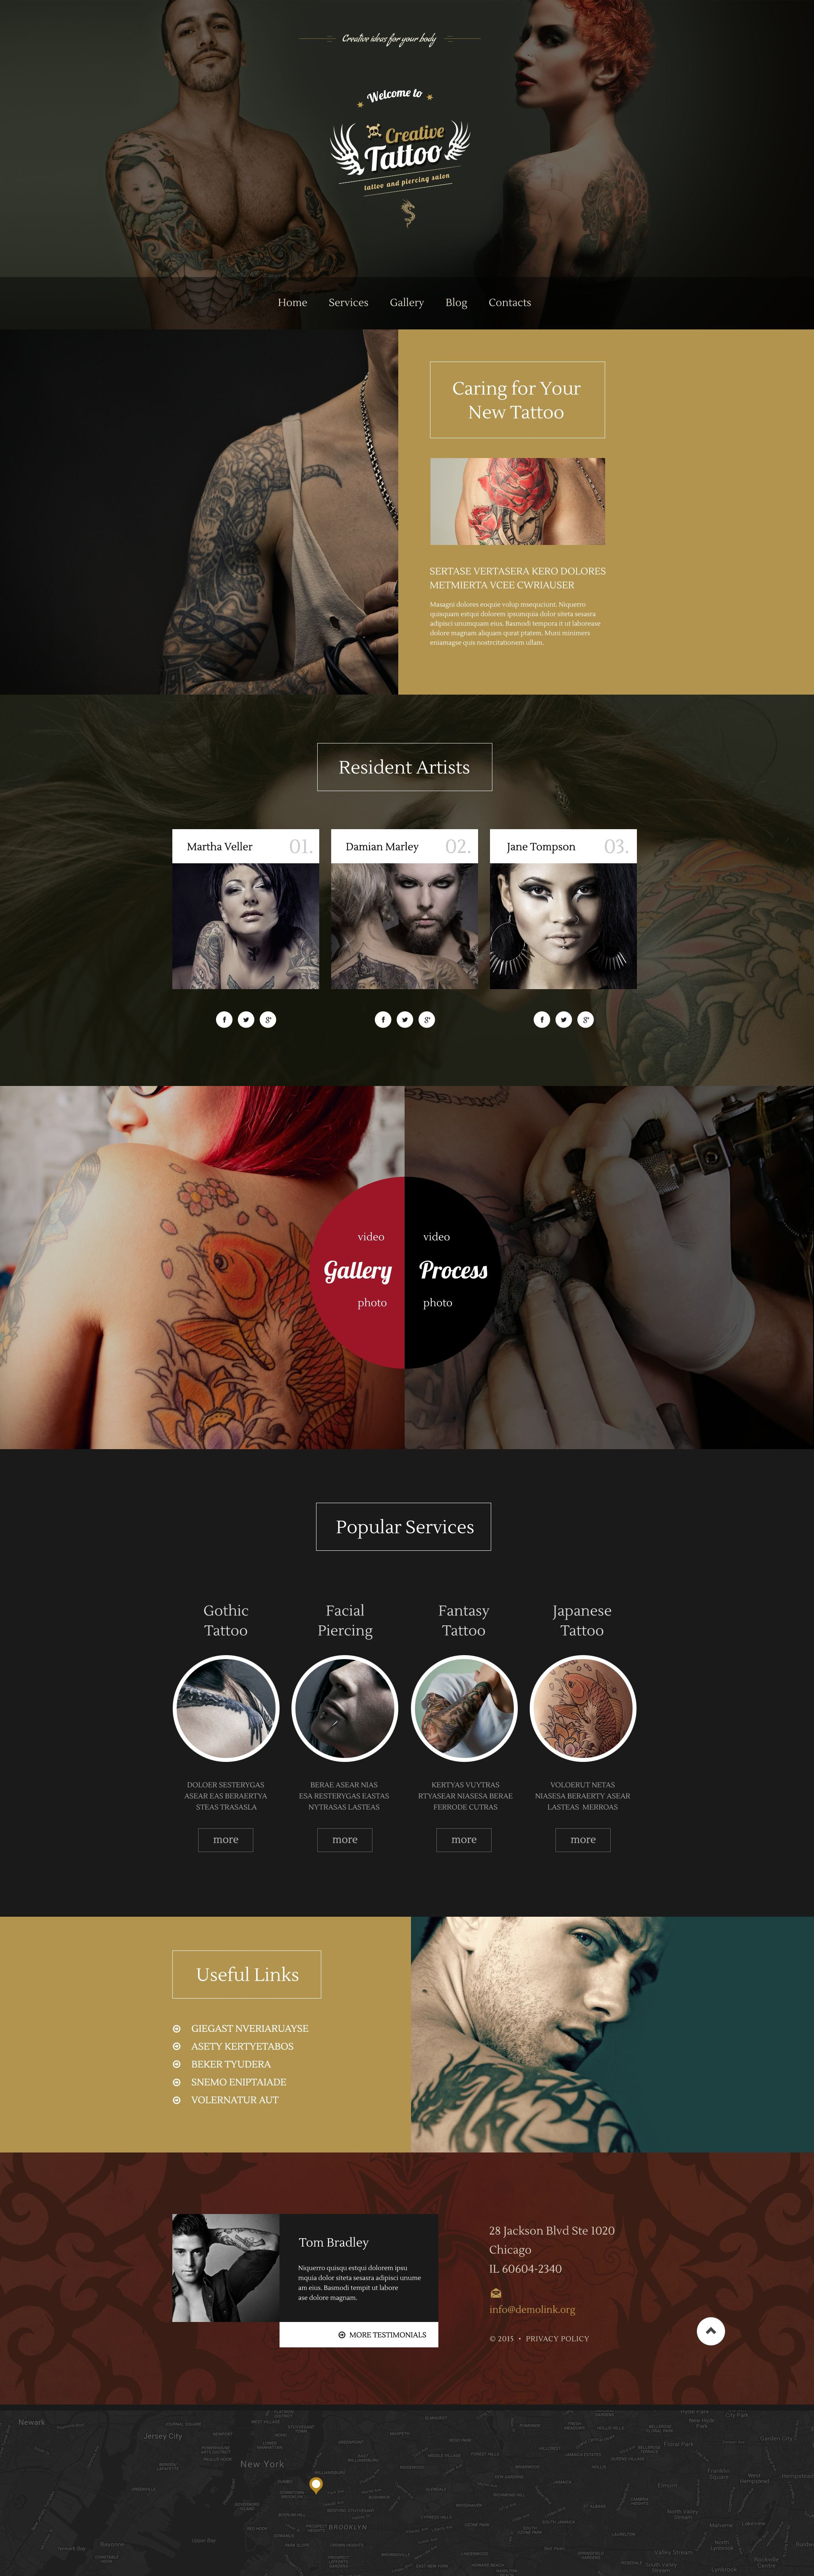 "Modello WordPress Responsive #55046 ""Salone di Tatuaggi"" - screenshot"